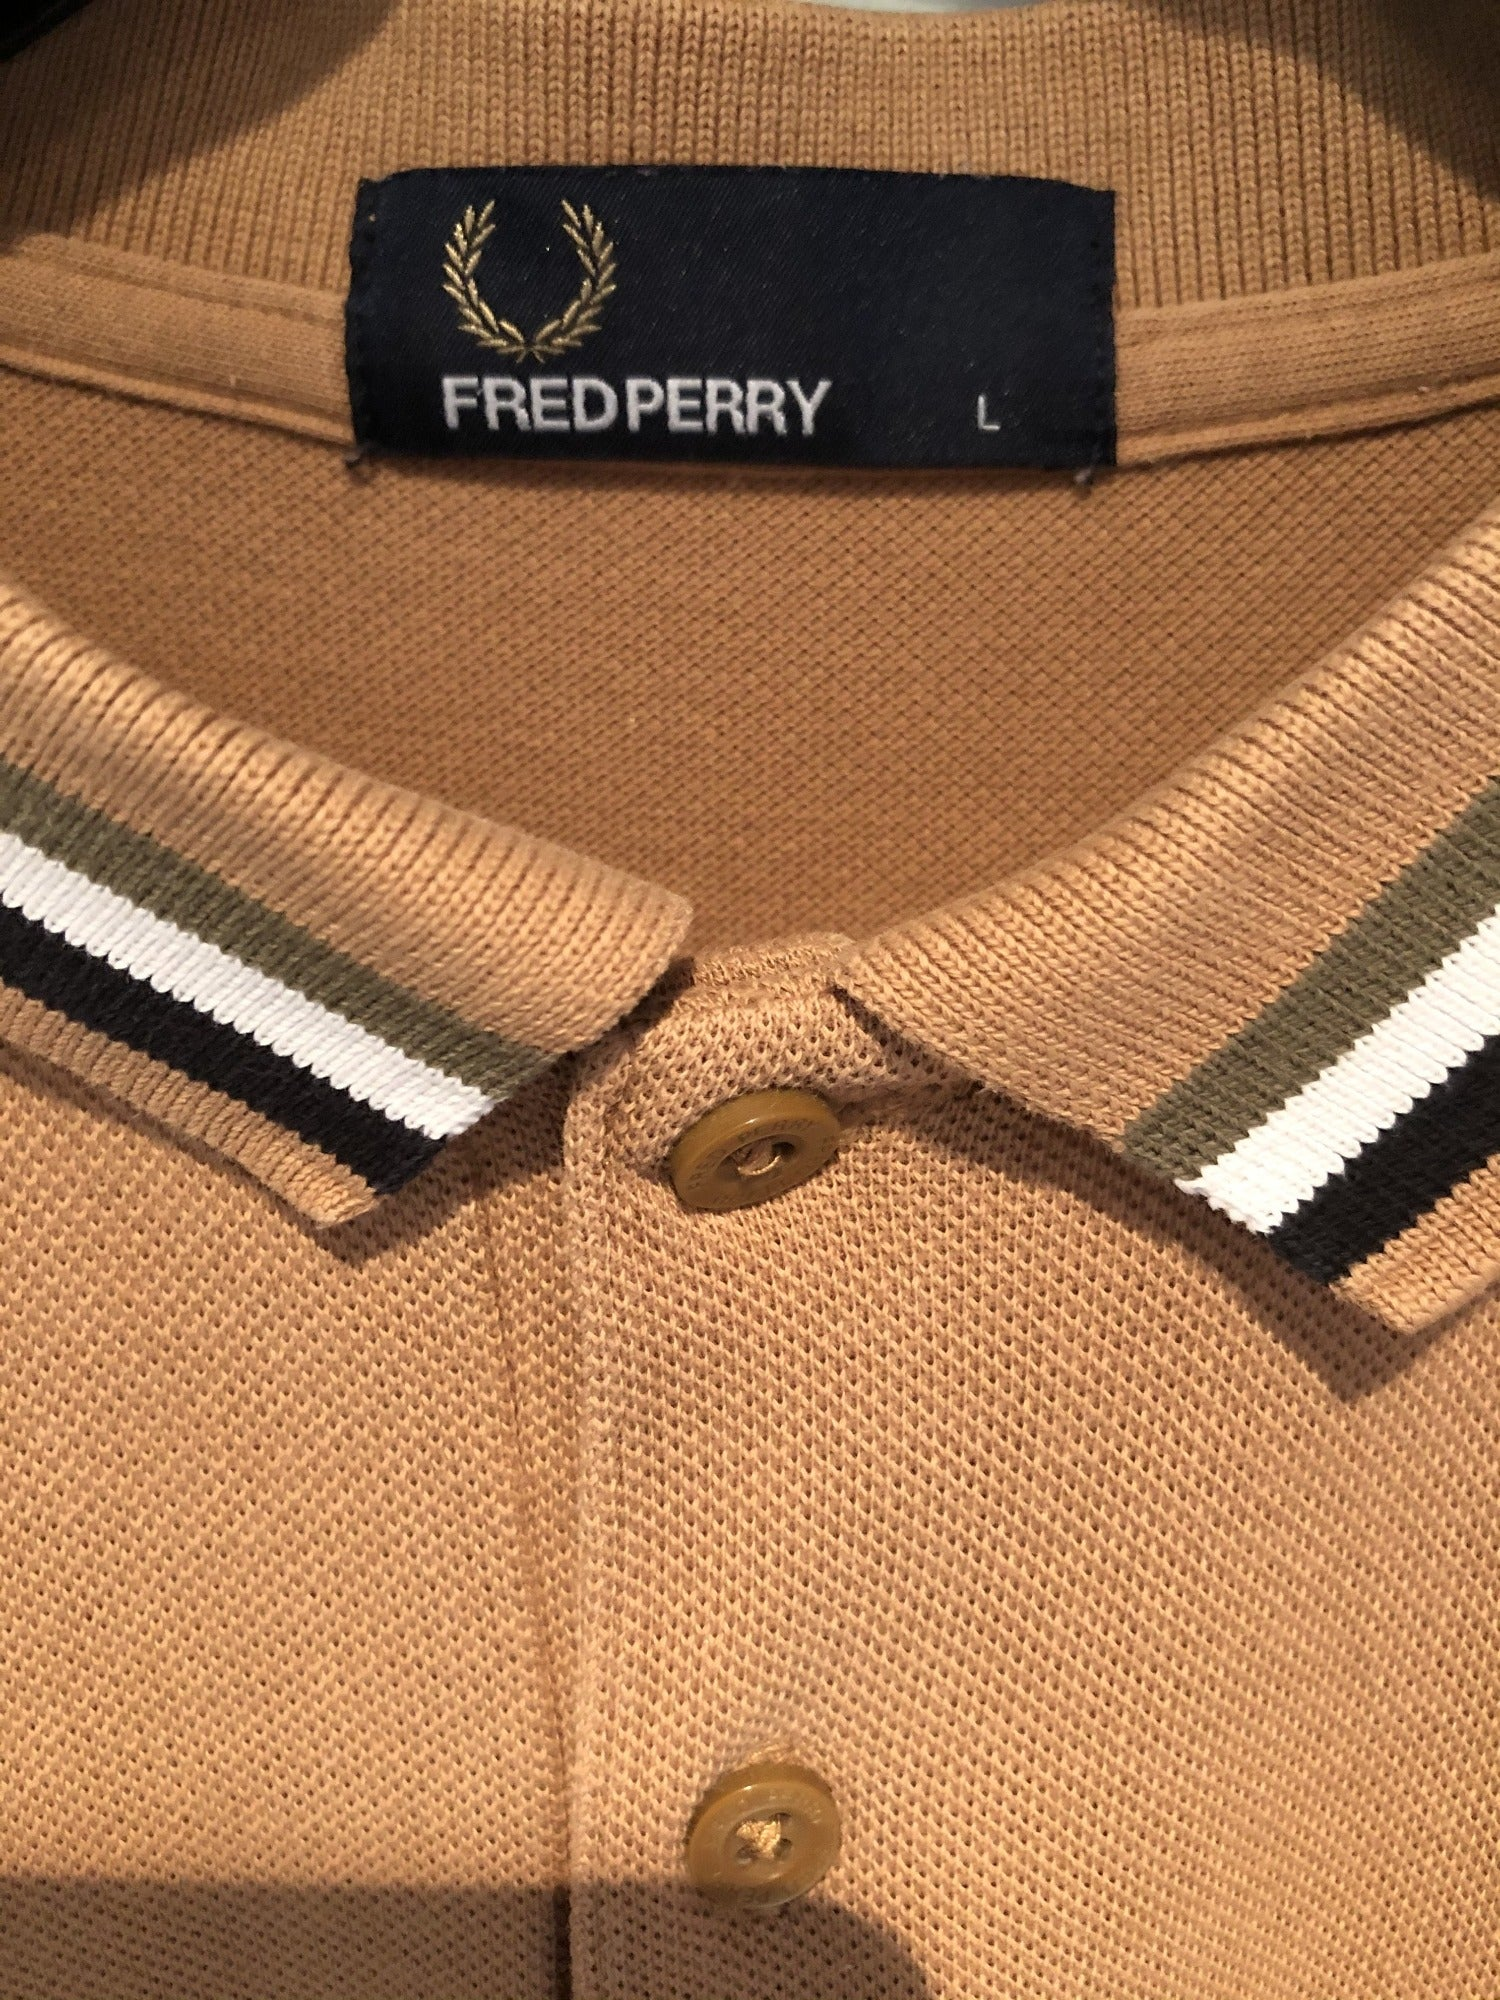 Fred Perry Polo Top Beige / Camel - Size L - Urban Village Vintage